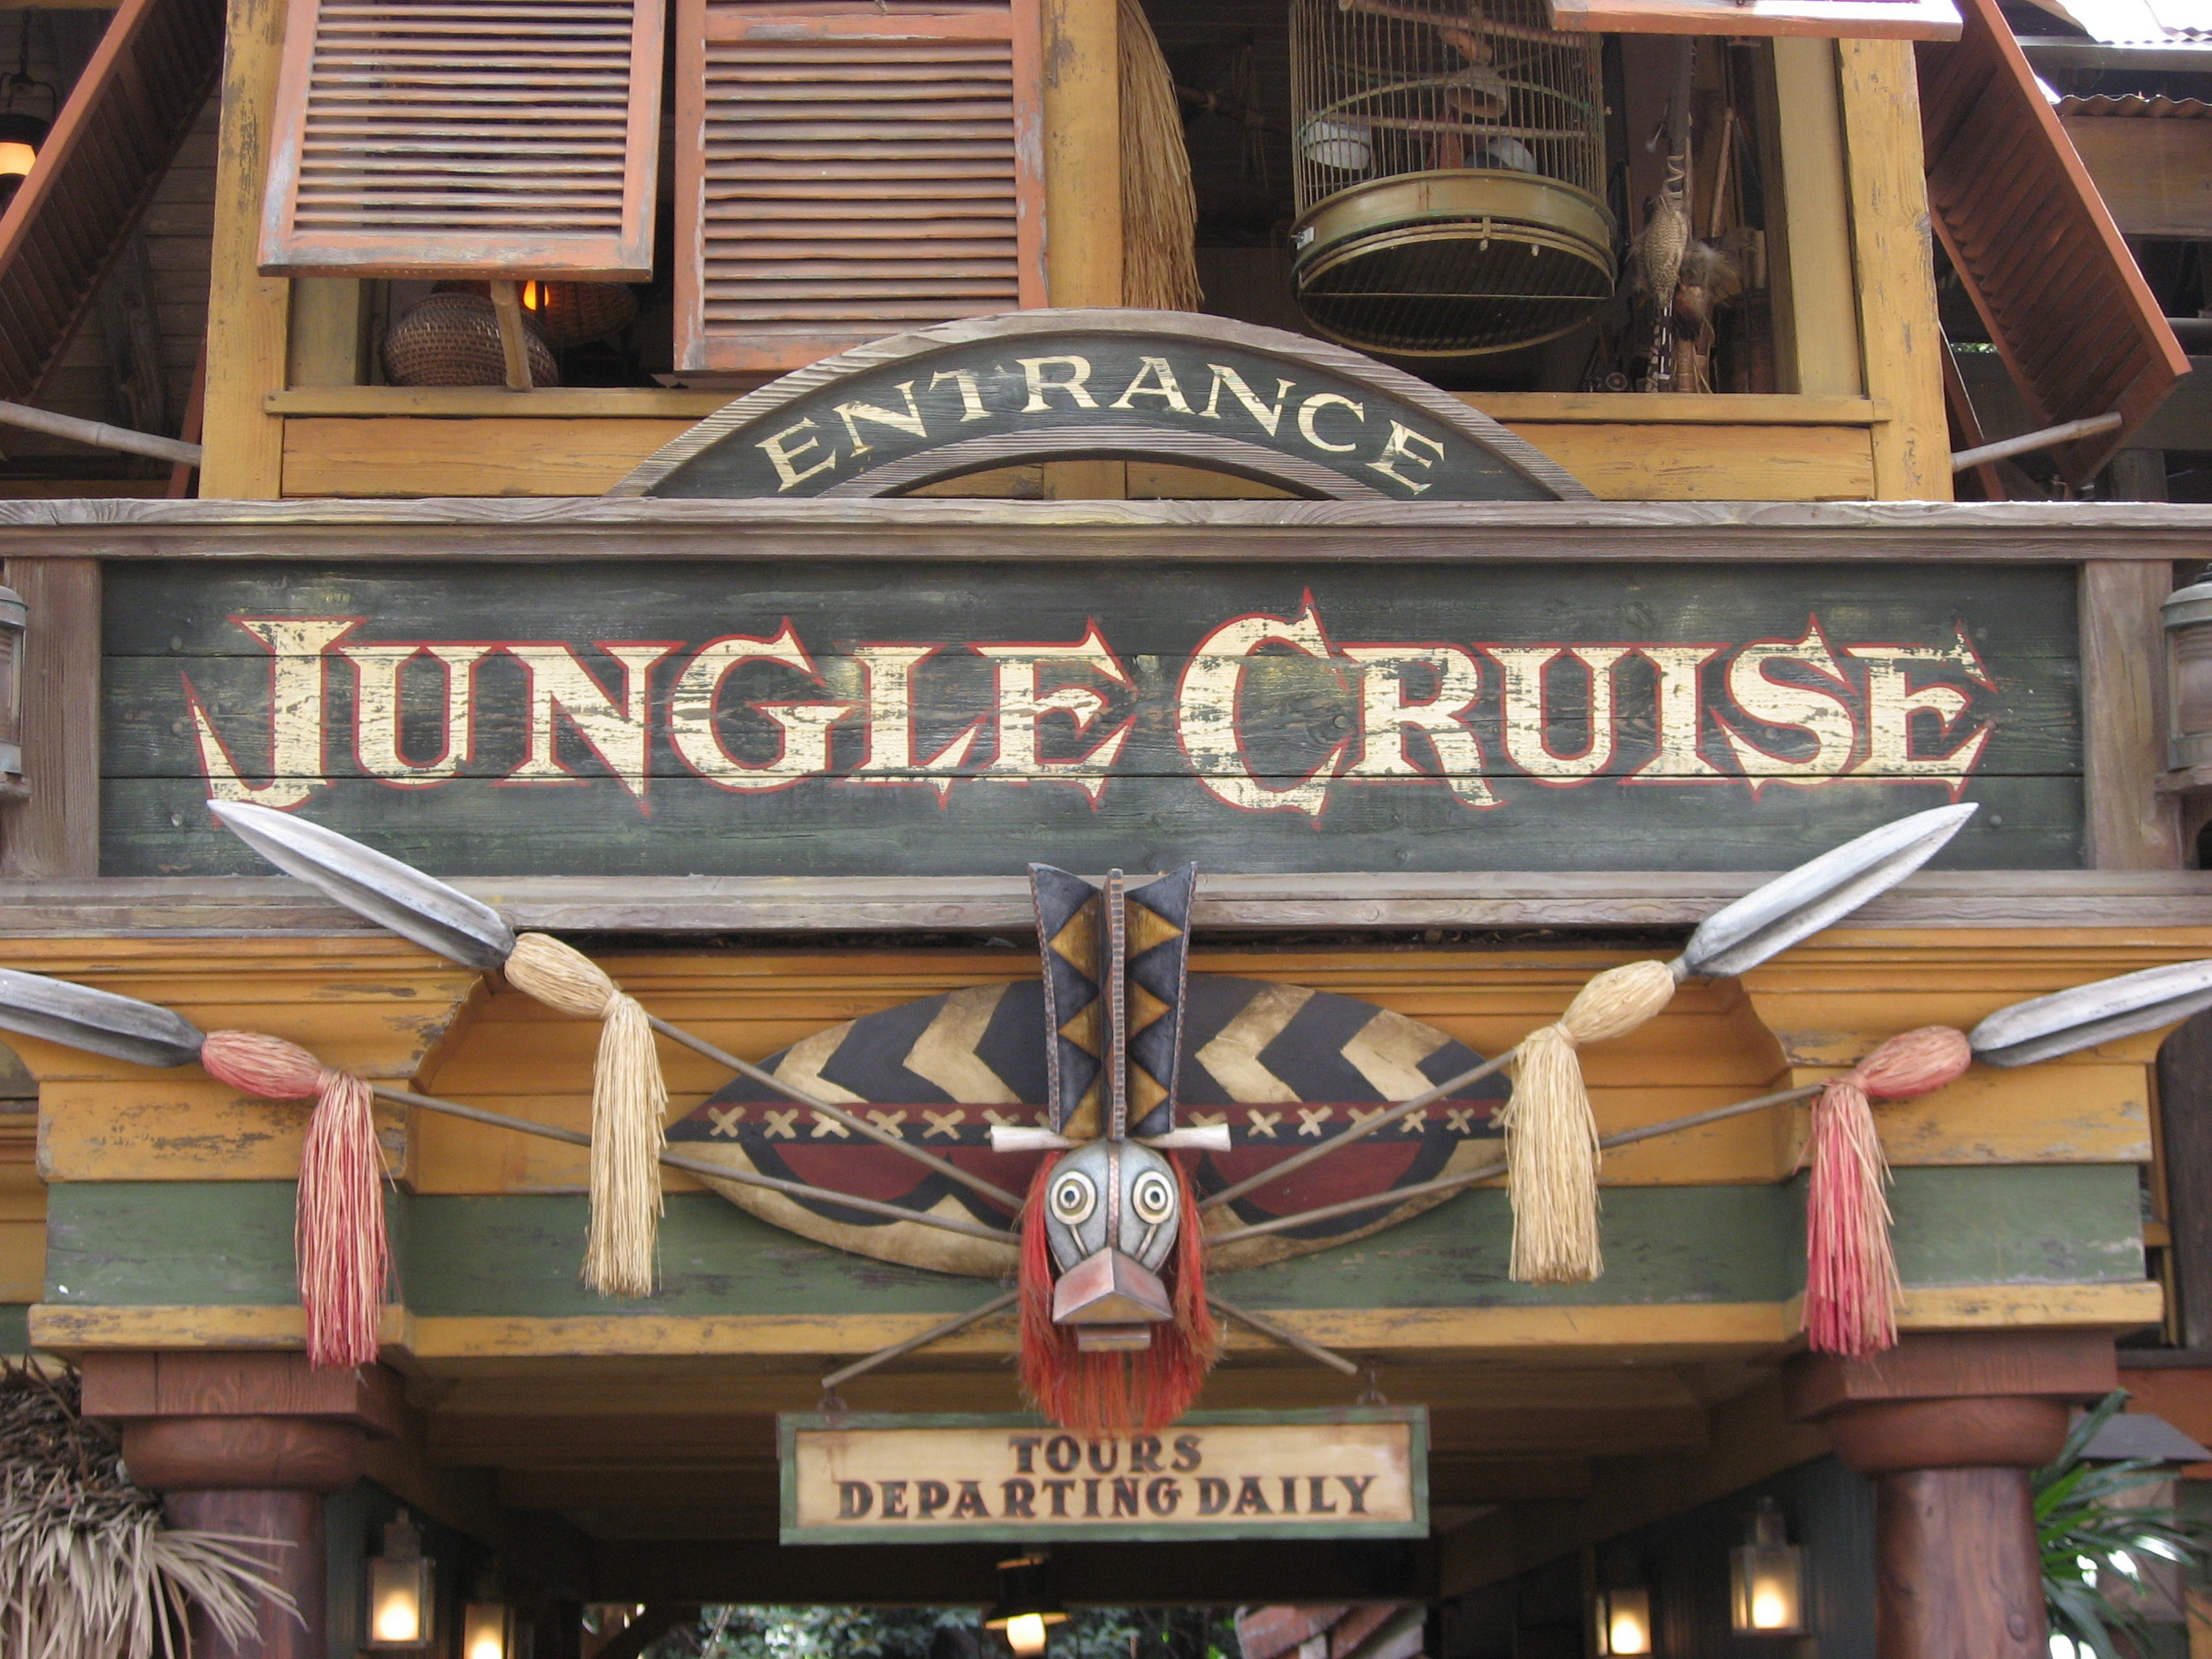 Jungle_Cruise_at_Disneyland_entrance.jpg